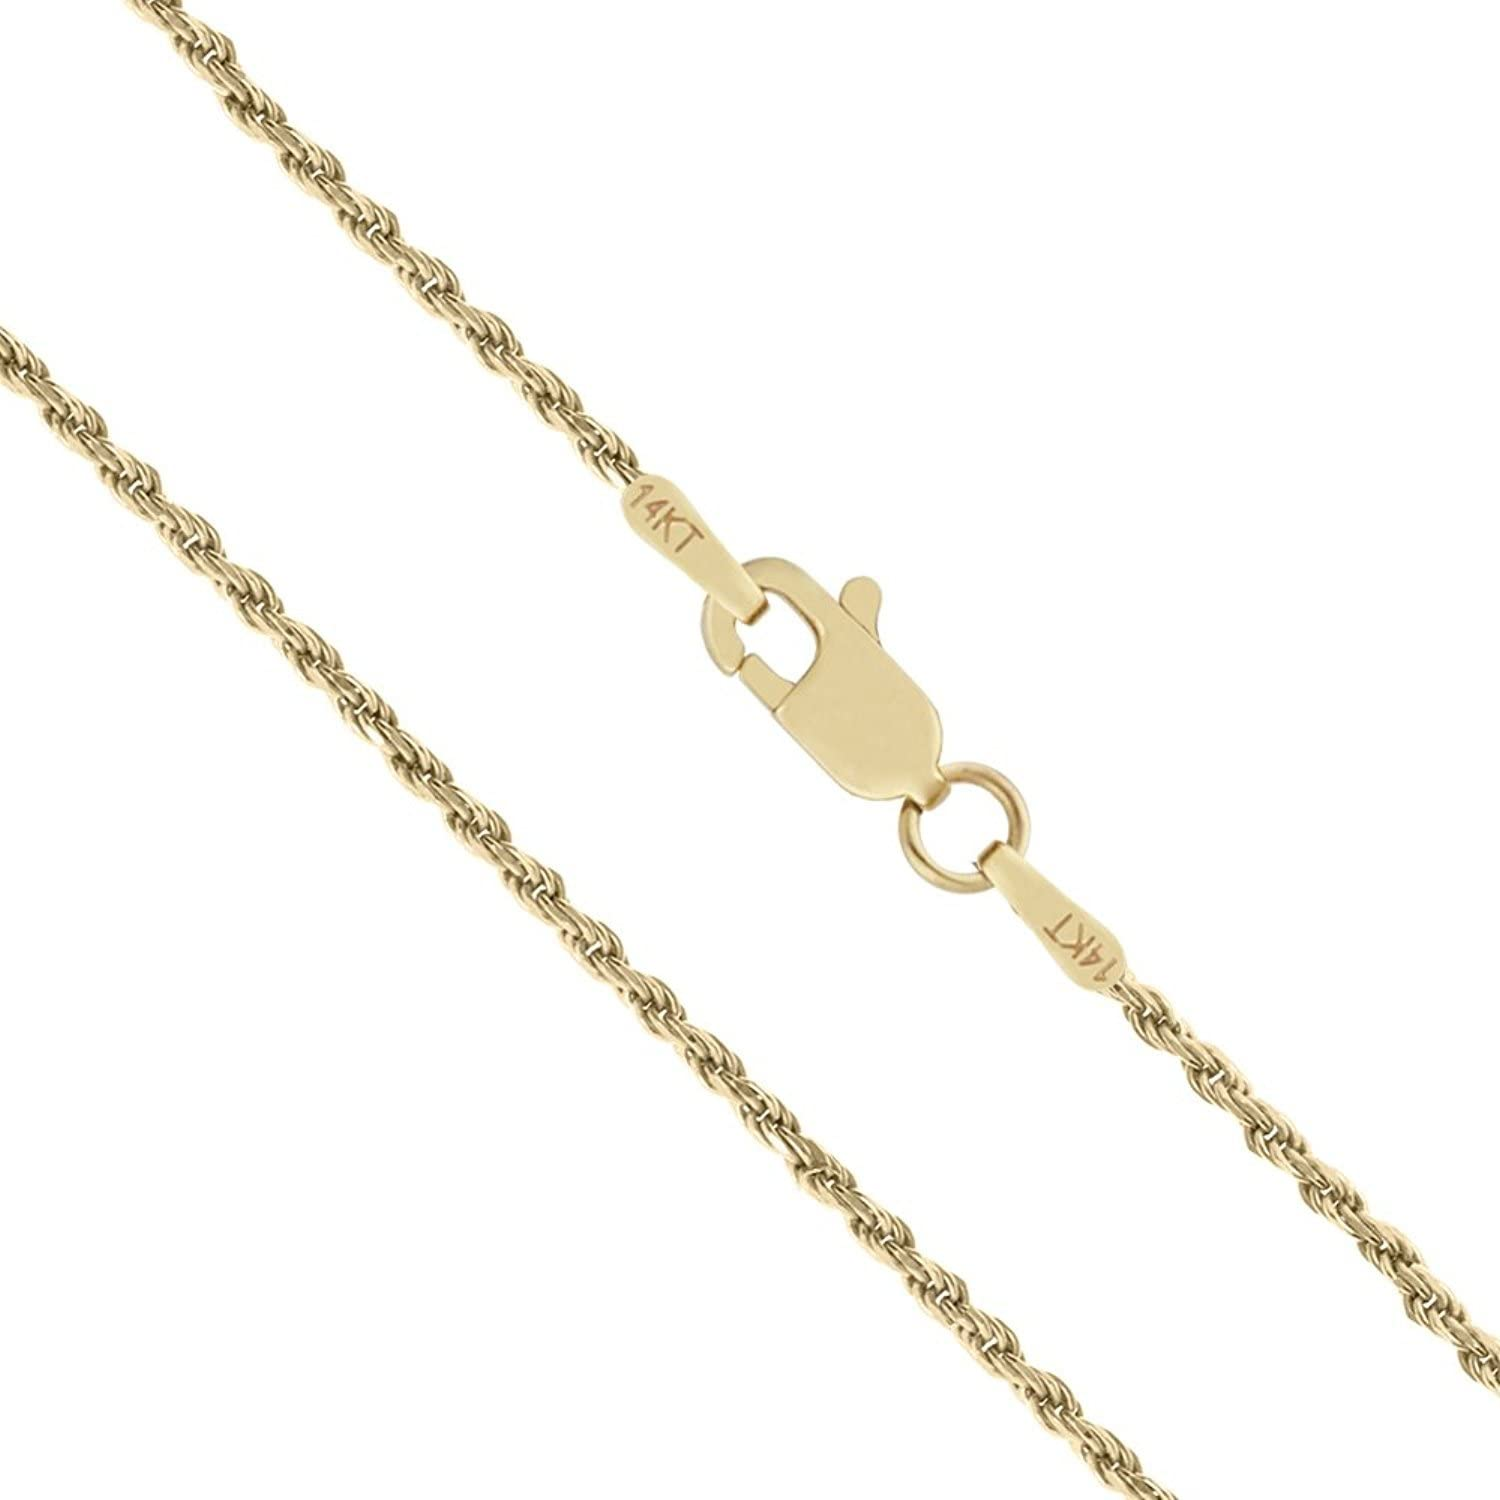 "Length: 16/""-24 MCS Jewelry 14k Yellow Gold Solid Diamond Cut Rope Chain Necklace 1.25 mm"